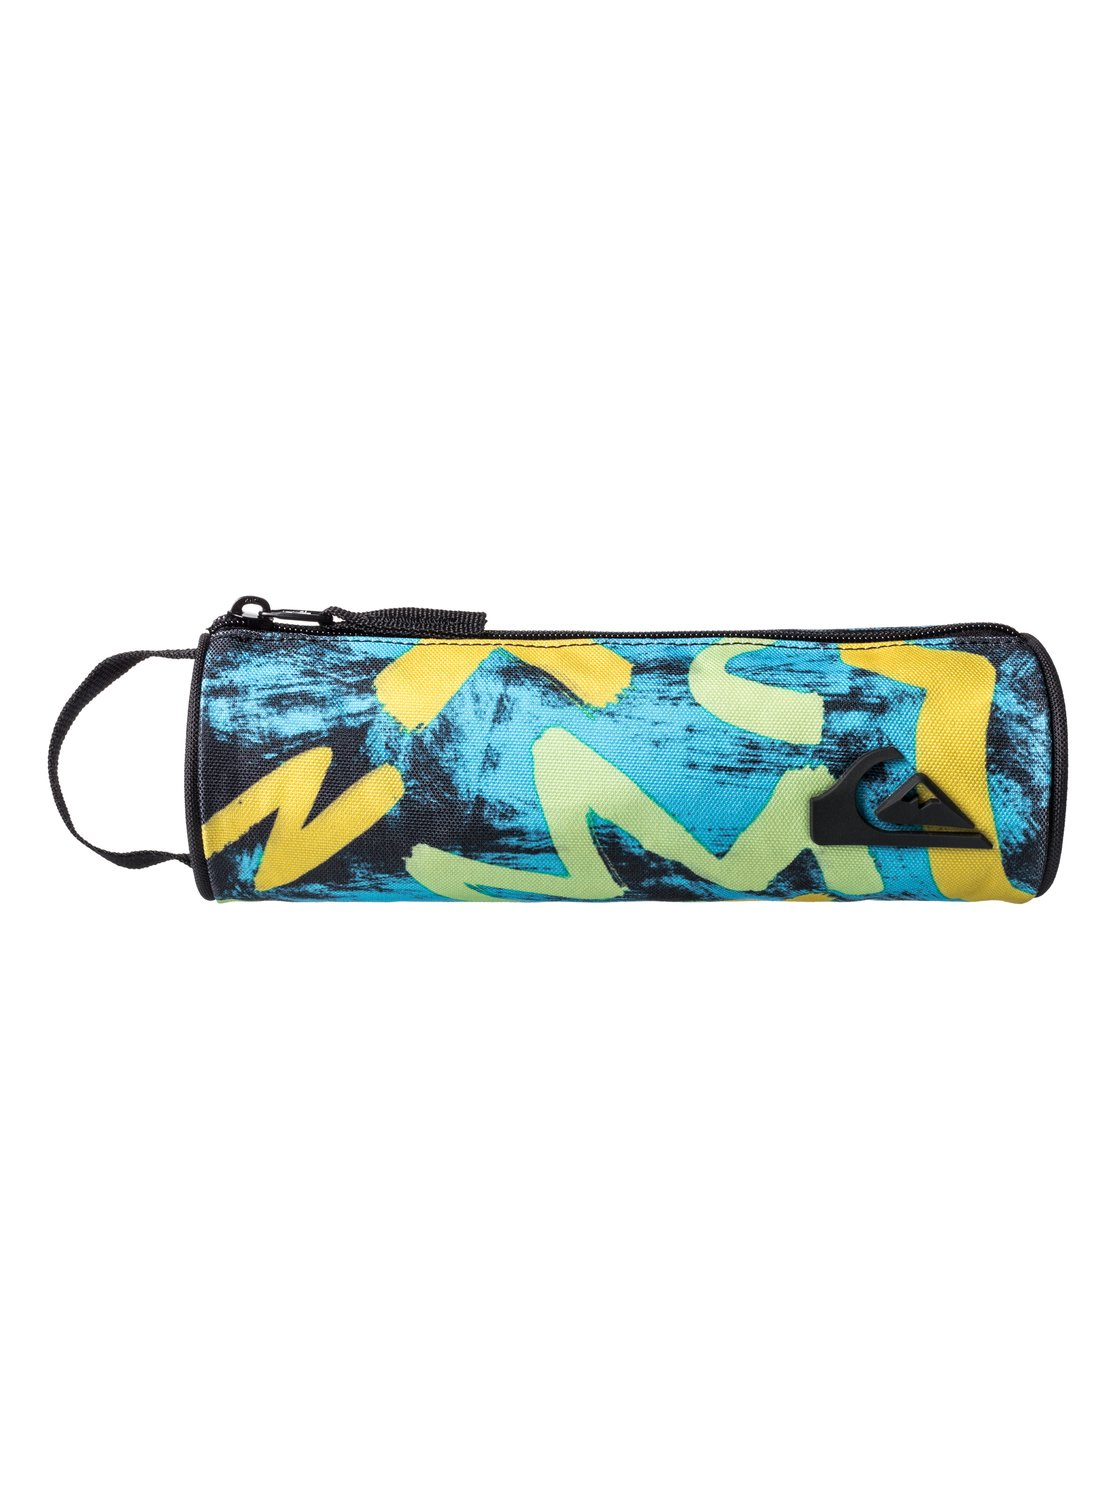 Quiksilver Men's Pencil Print Pencil Case